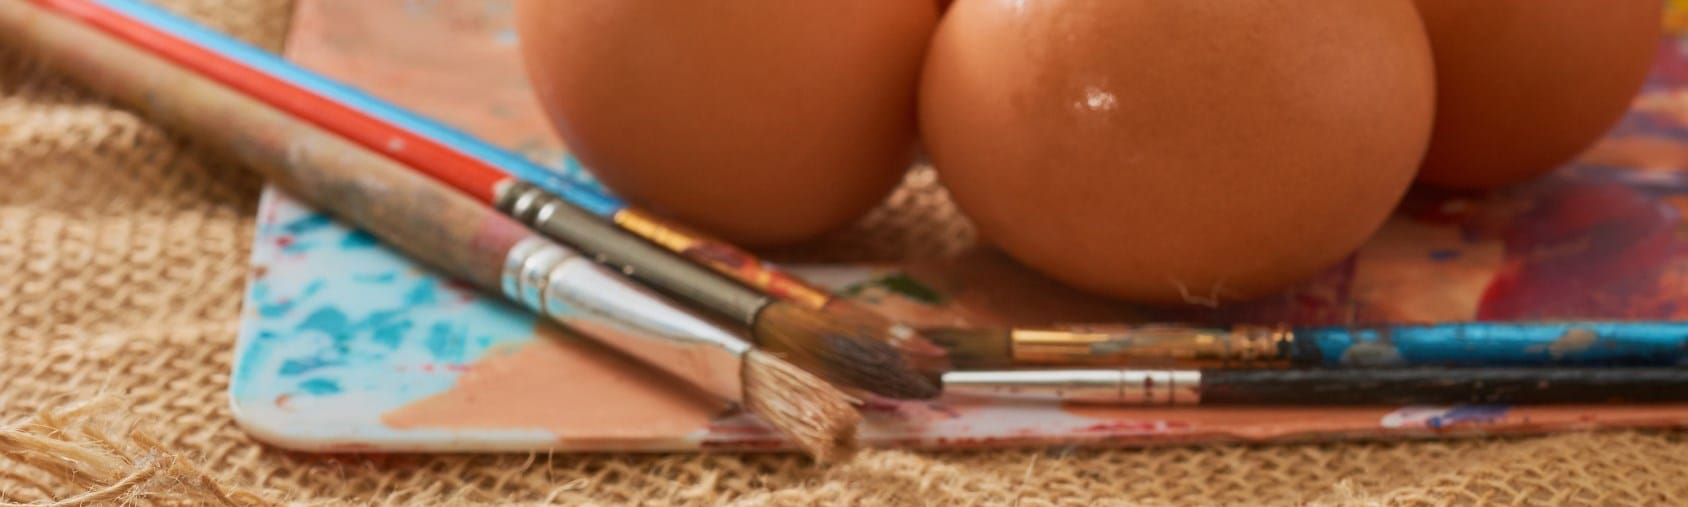 Paint brushes and eggs.